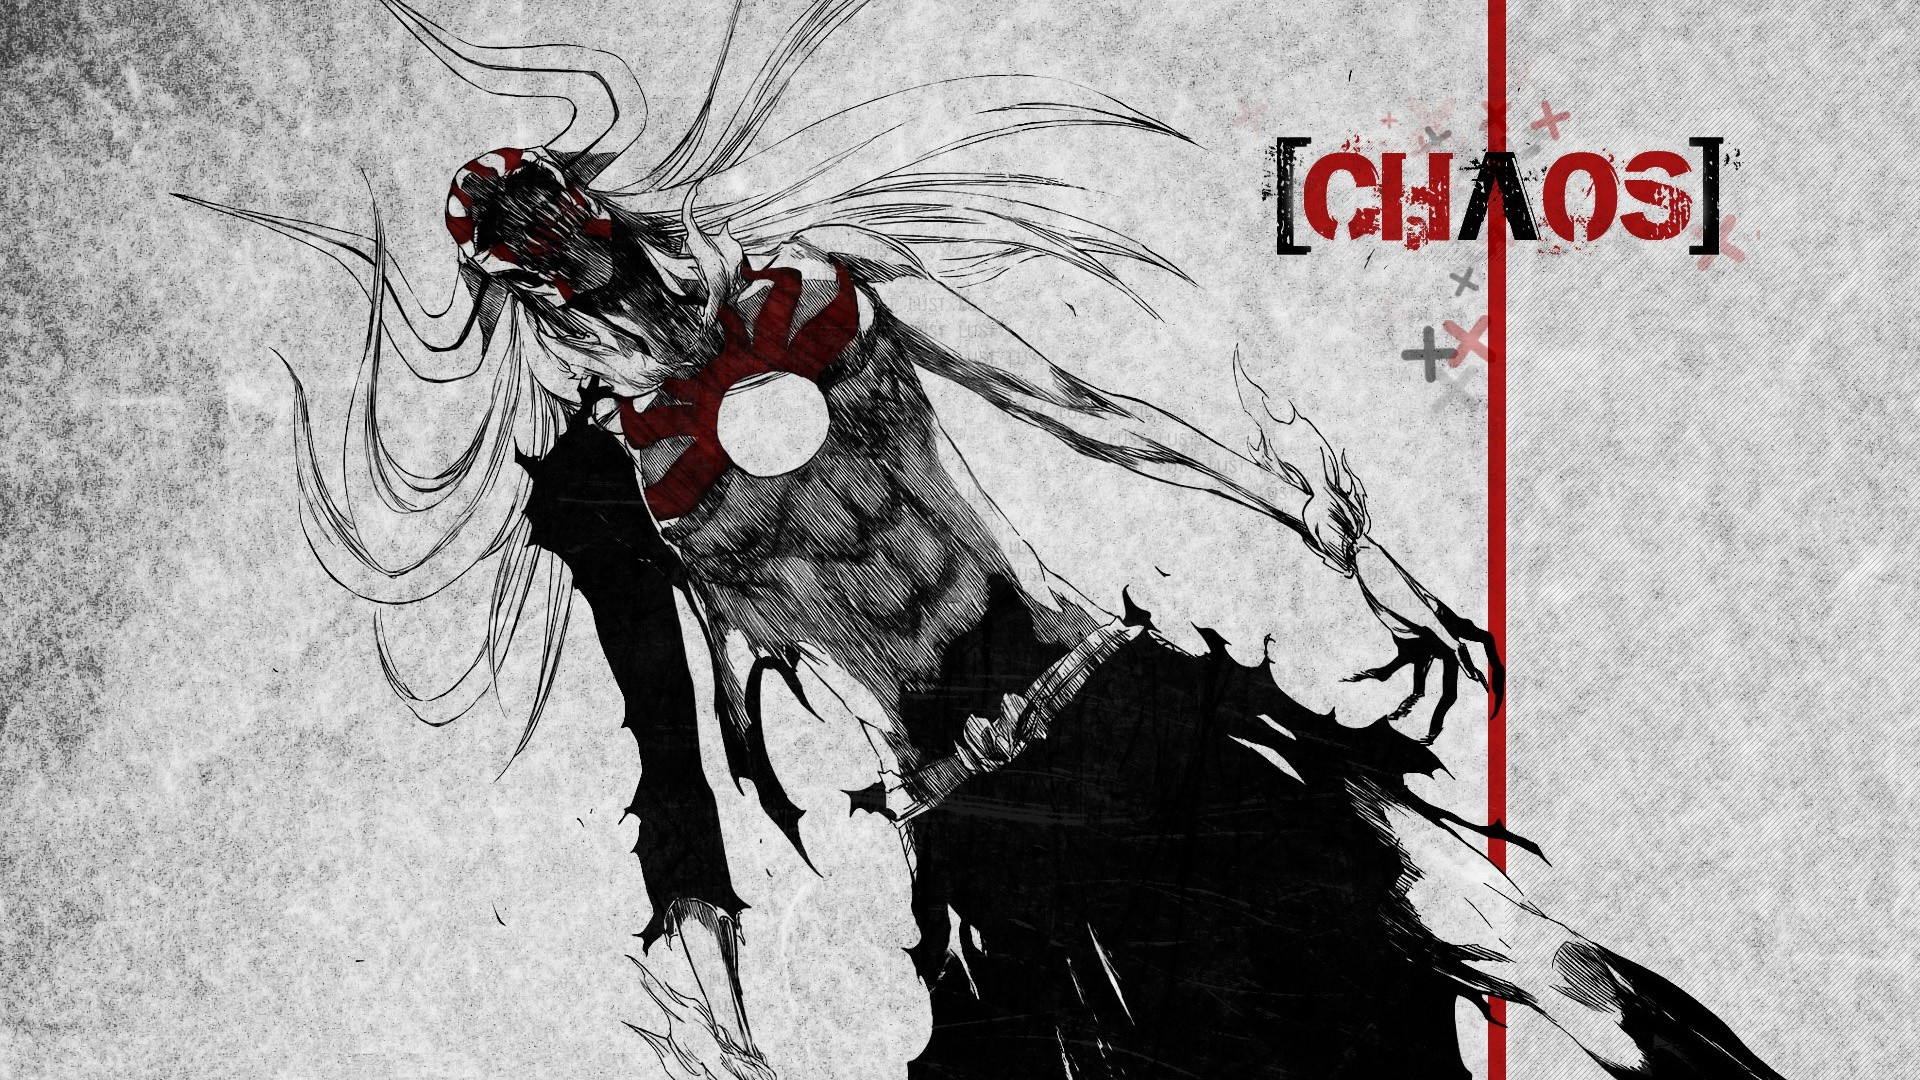 1920x1080 free anime bleach wallpapers hd hd wallpapers apple tablet amazing samsung wallpapers  wallpaper for iphone download